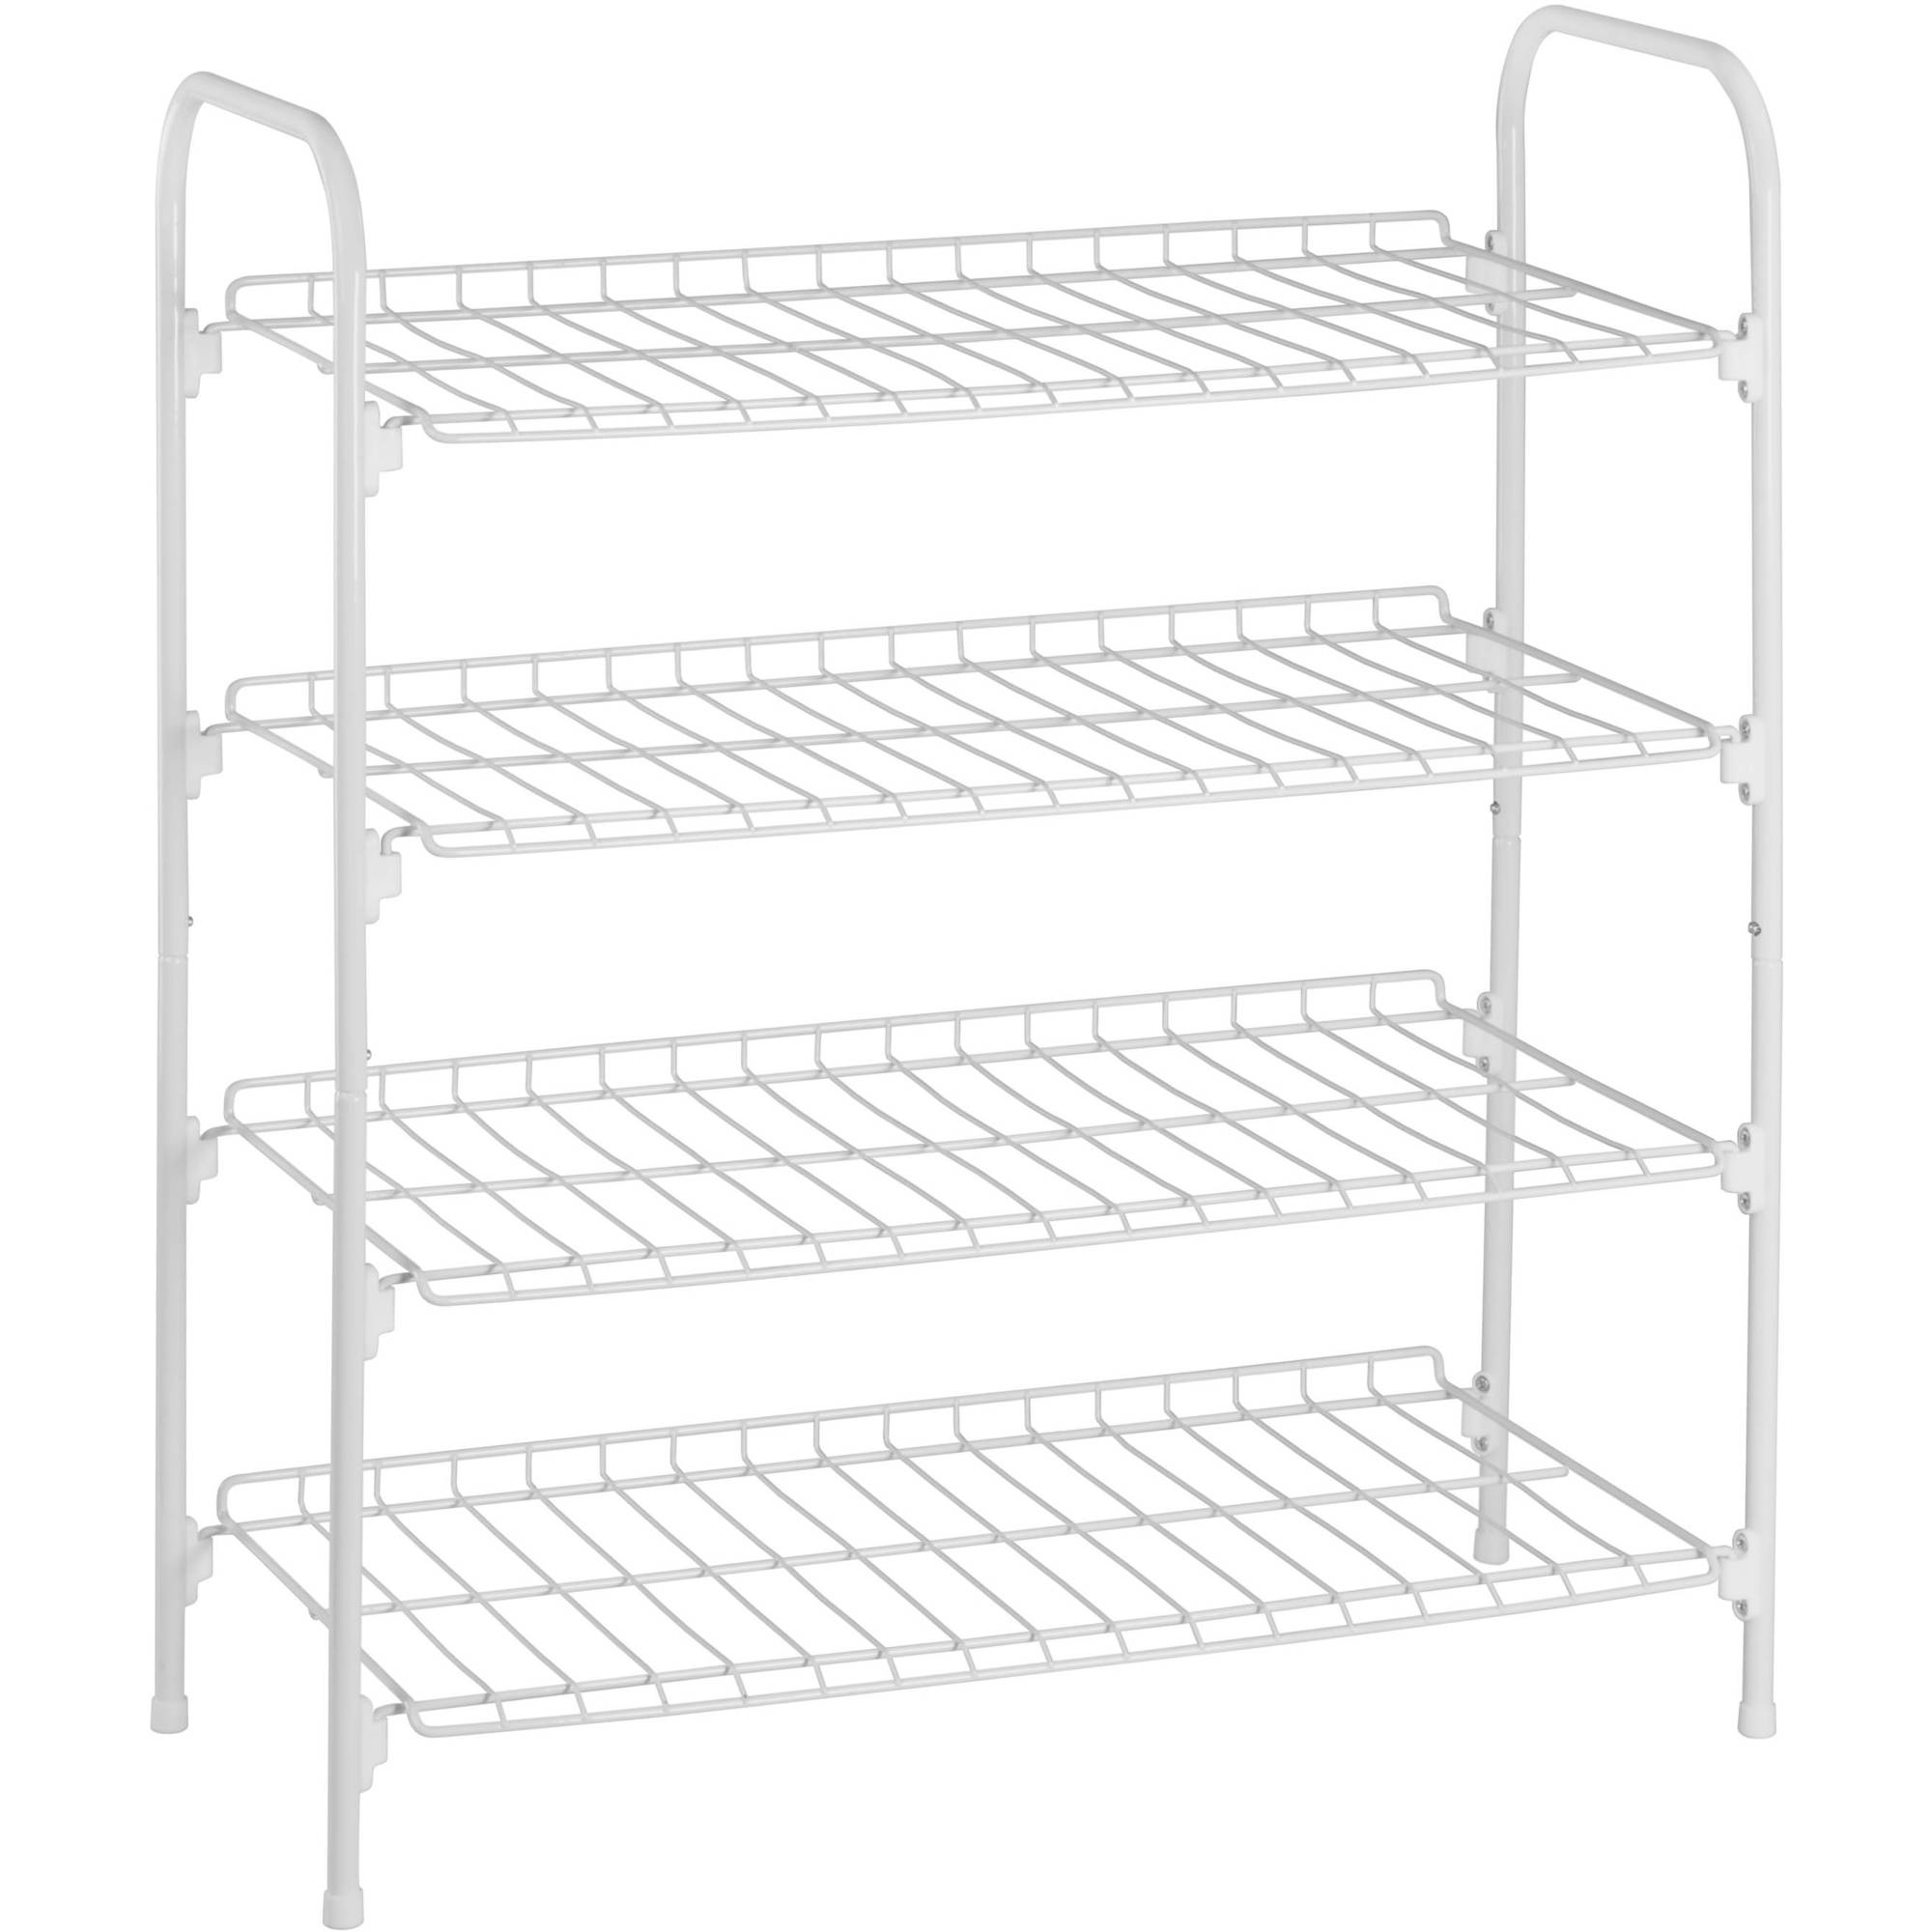 Shoe Rack Accessory Shelf 4 Tier Metal Closet Storage Organizer Stackable White